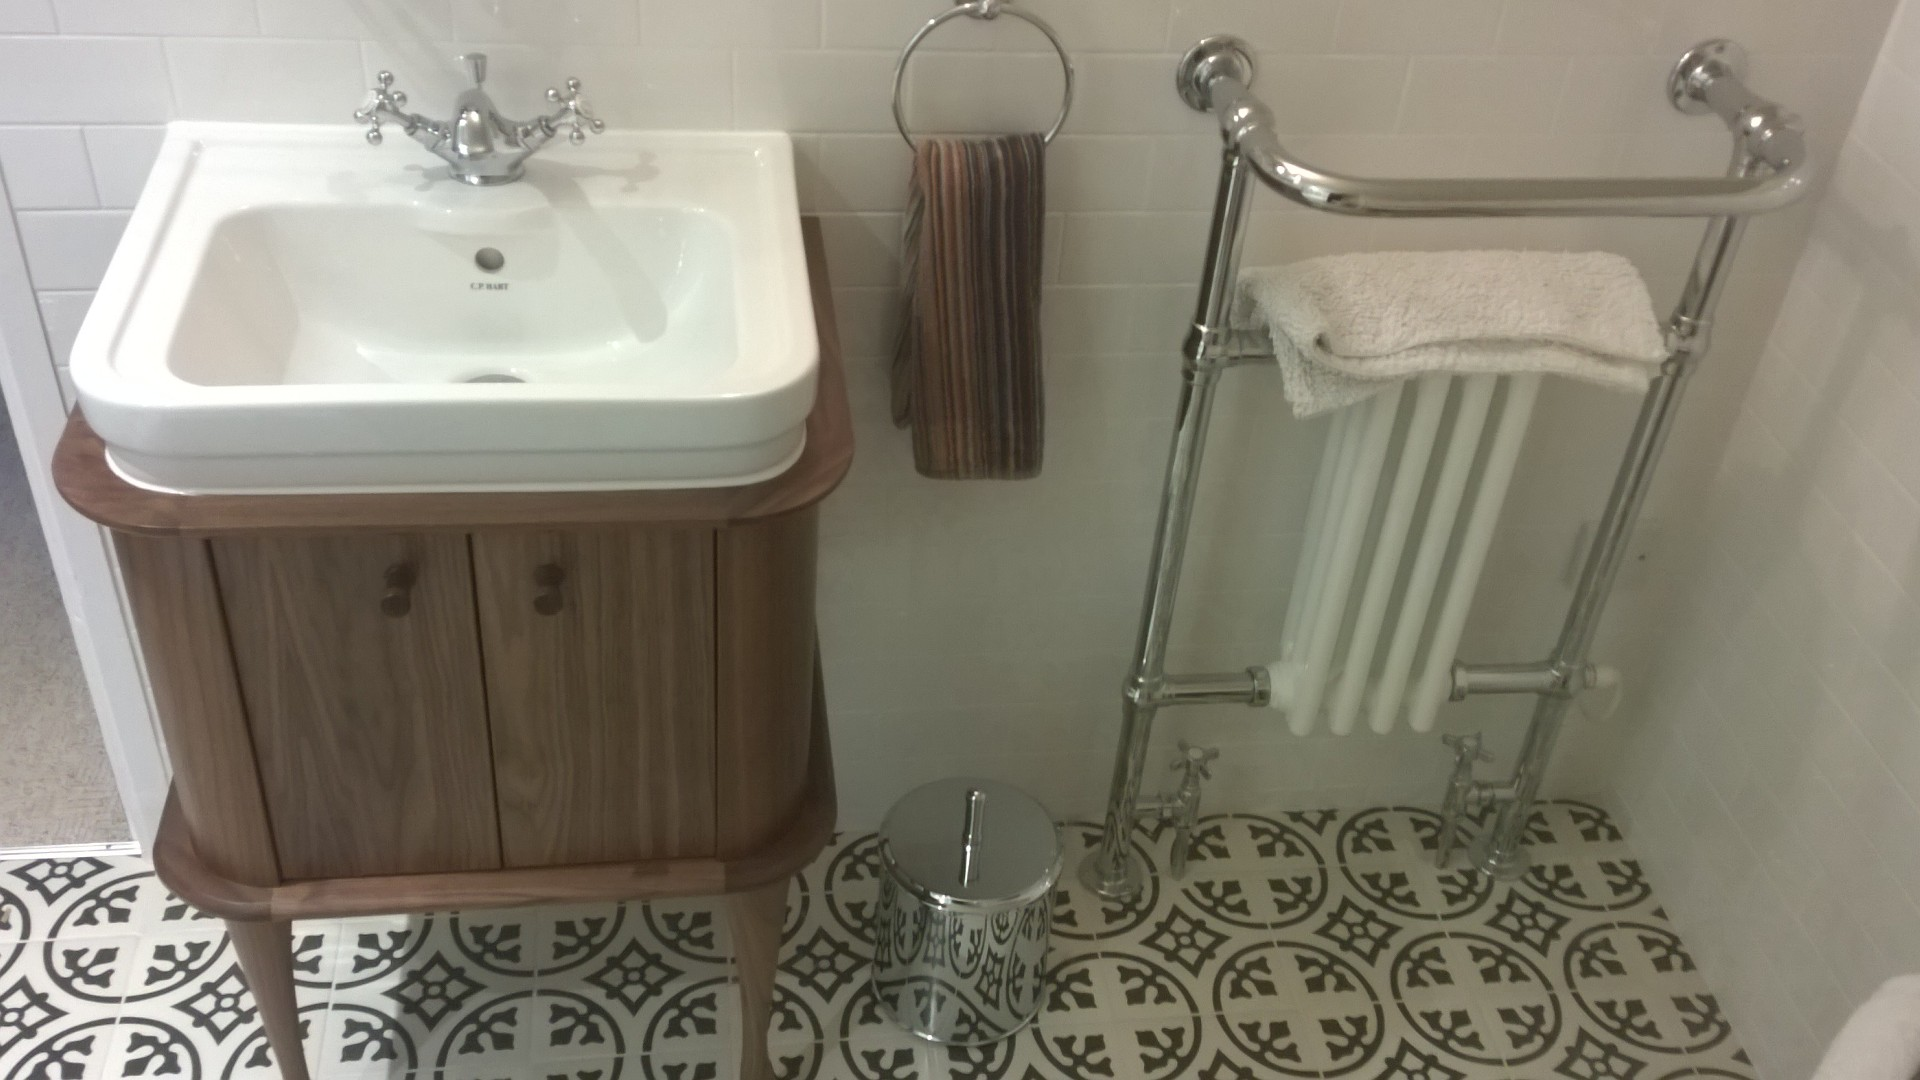 An oak basin unit with patterned floor tiles